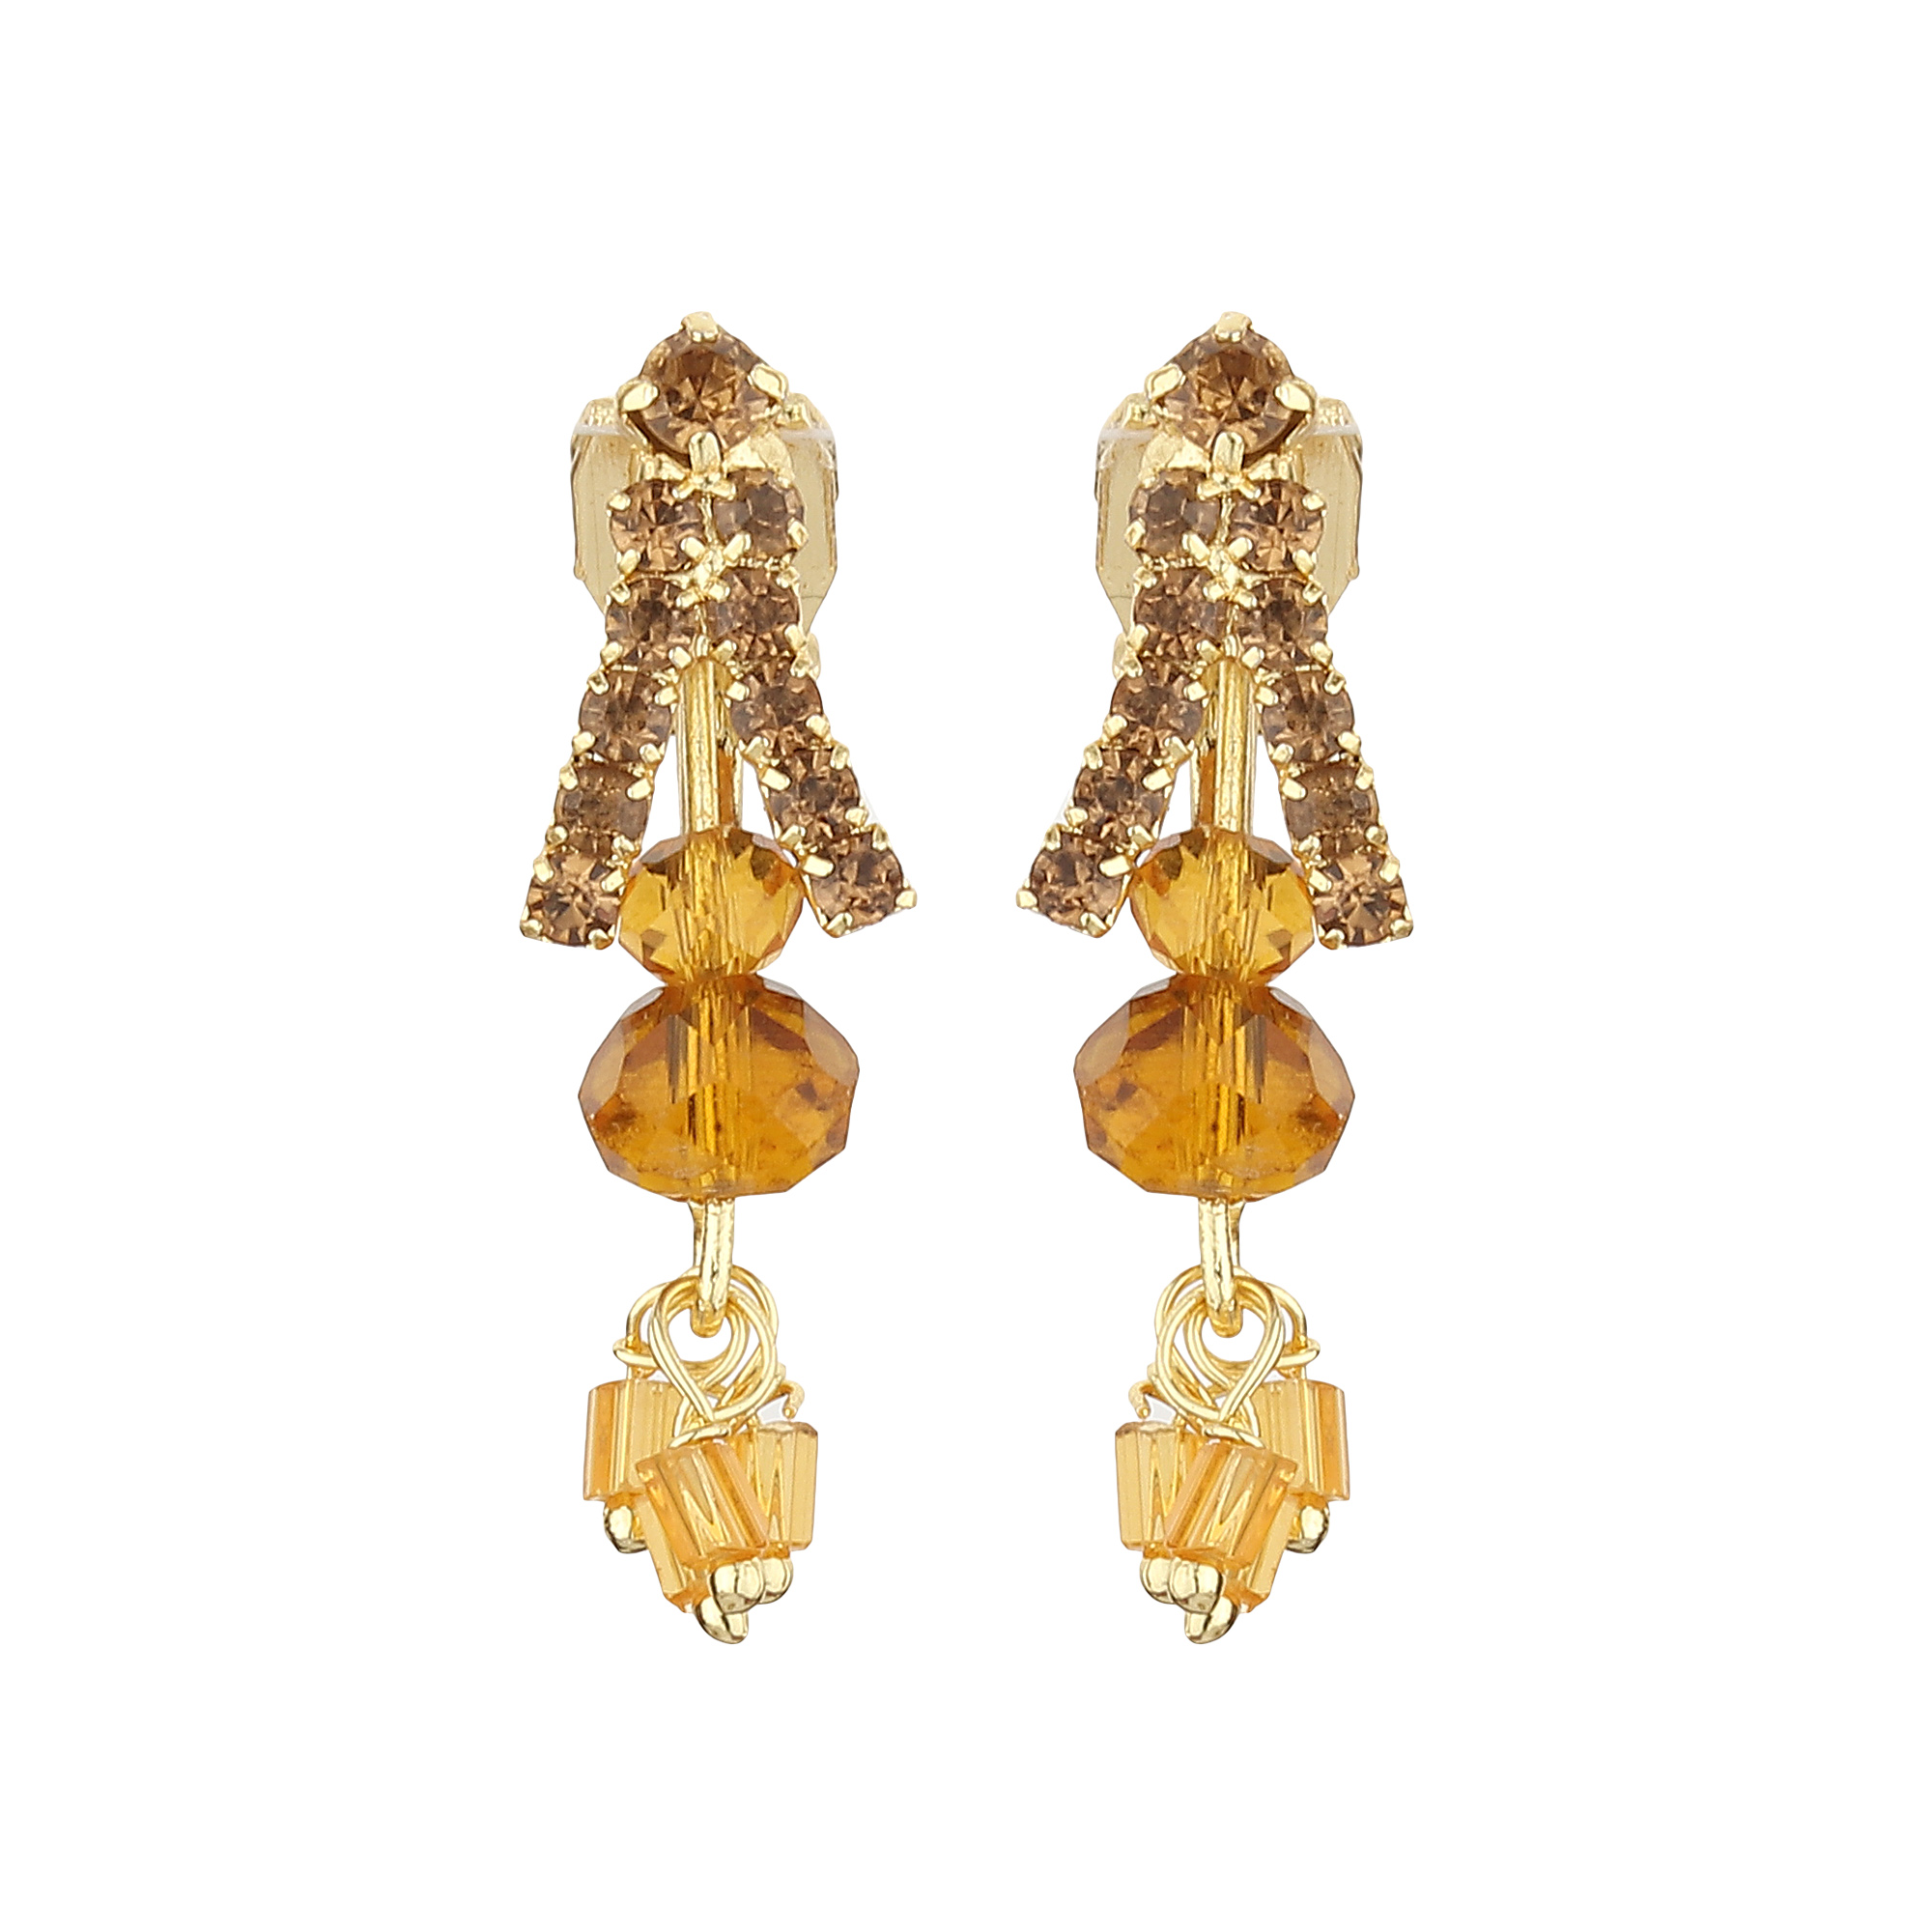 FirstBlush | FirstBlush Clip On Earrings for Non Piearced Ears for Women & Girls; Plating: Gold; Color: Gold; Size: 30 X 10mm; Wt.: 3gm. (MIEC104M147)